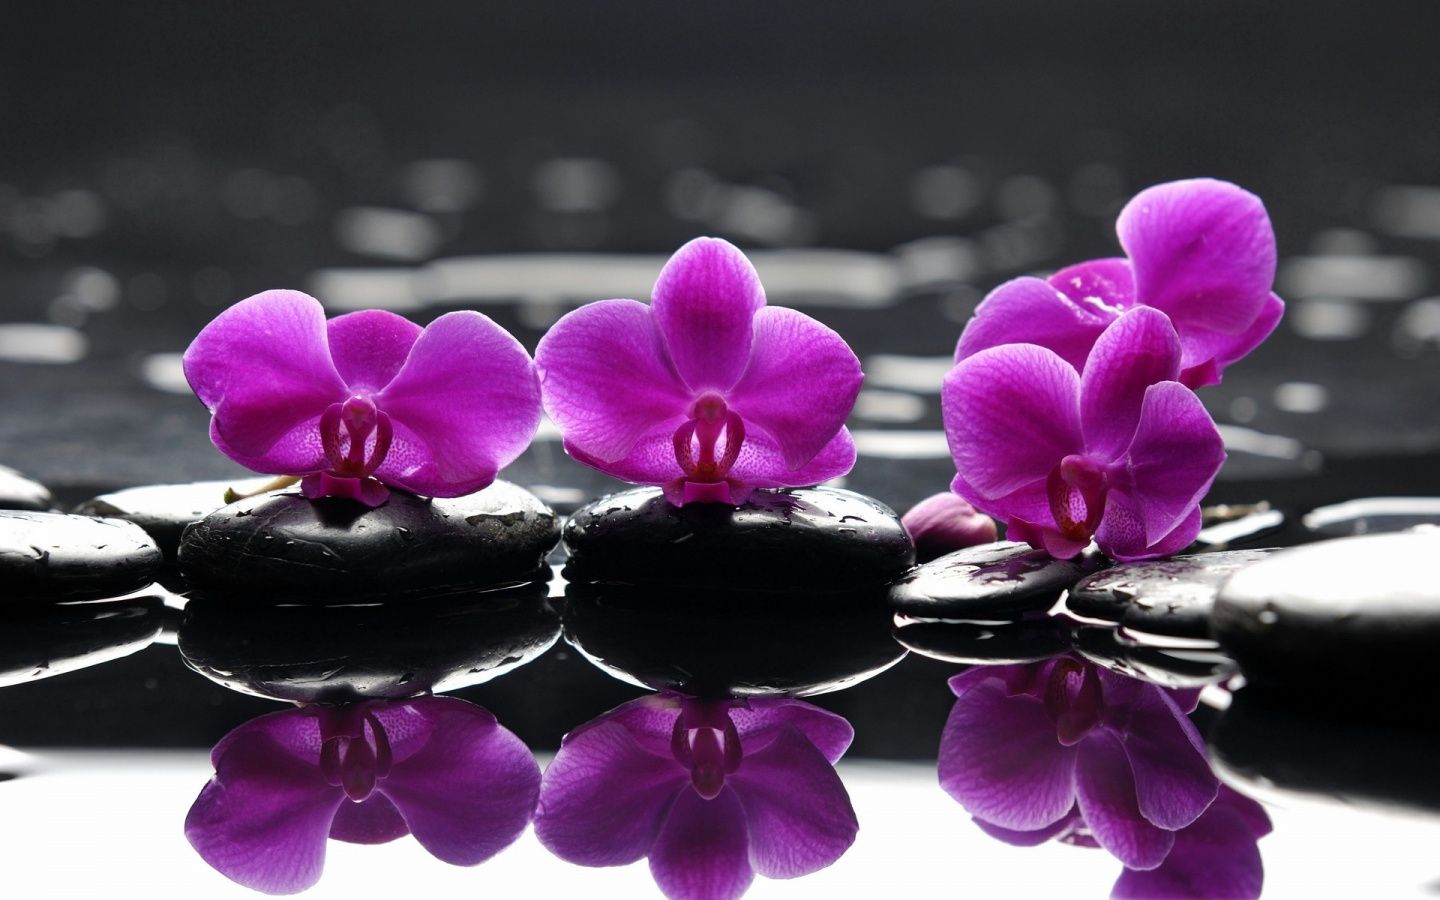 Spa Stones Purple Flower Droplets Reflection